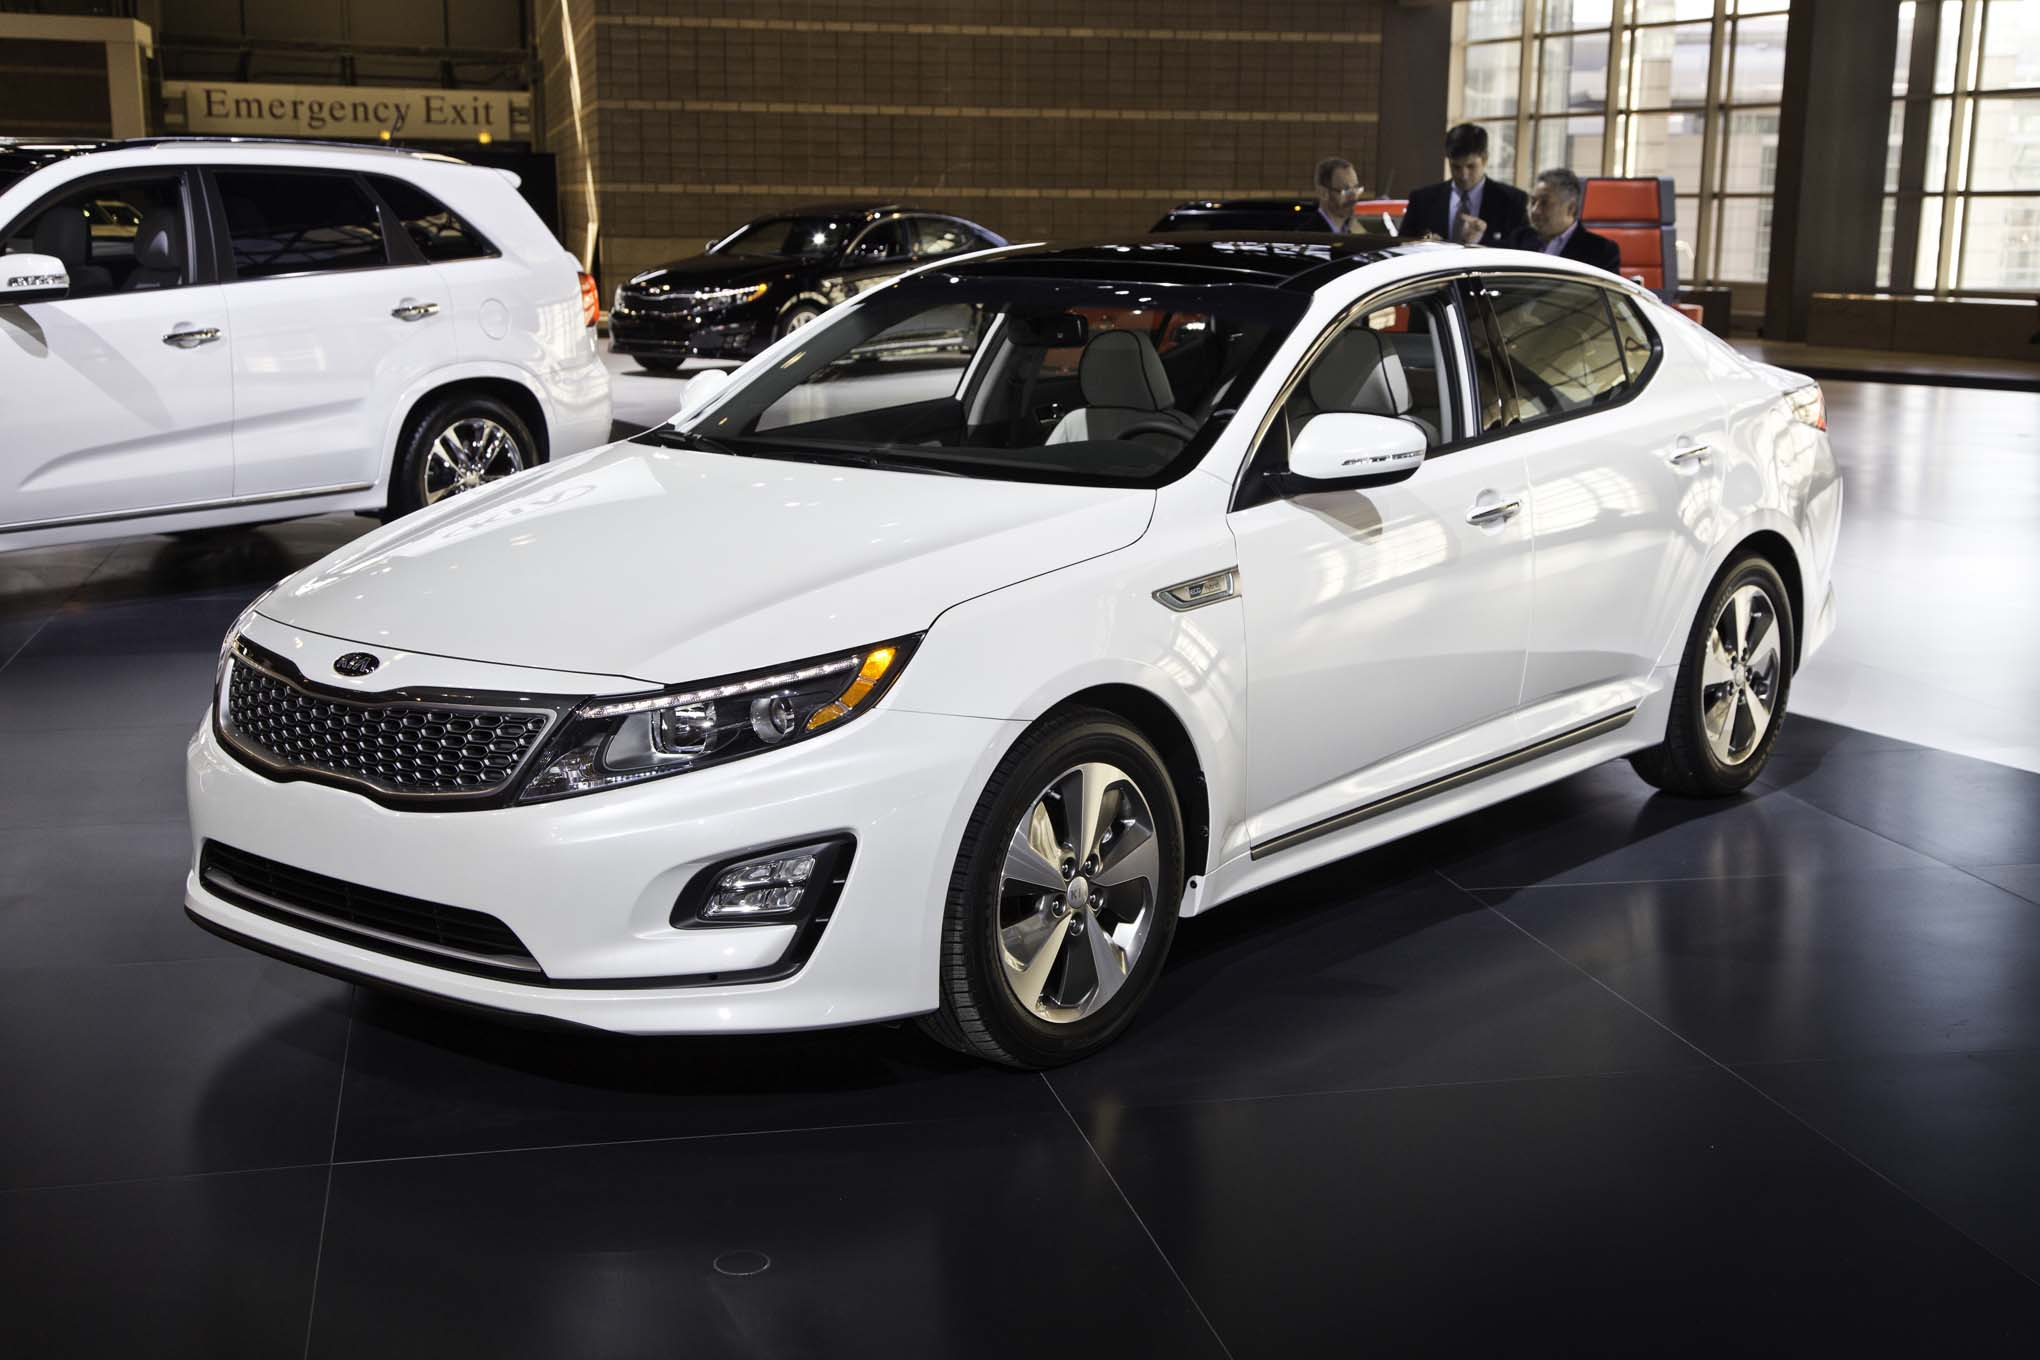 Facelifted 2014 Kia Optima Hybrid Debuts at 2014 Chicago Auto Show ...